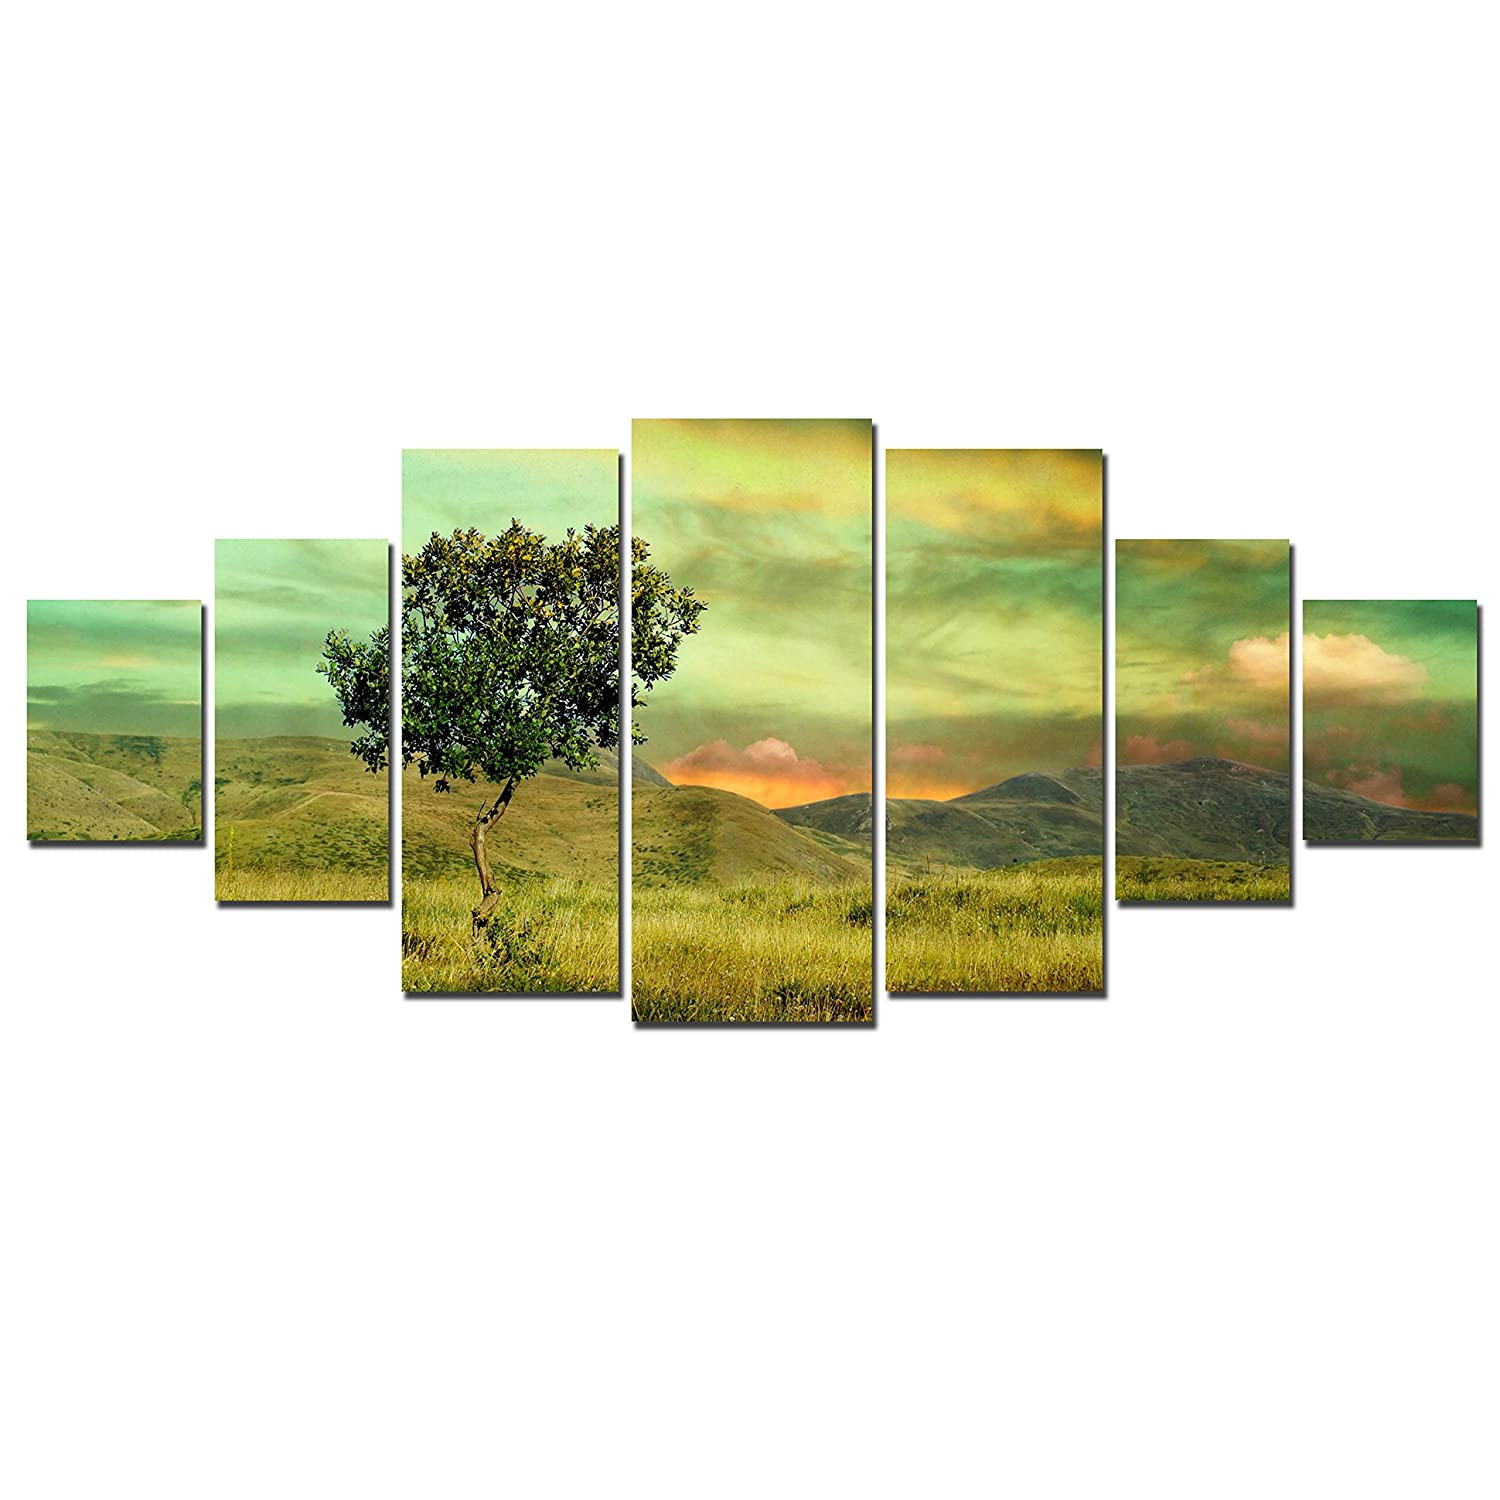 Excellent Usa Wall Art Contemporary - The Wall Art Decorations ...